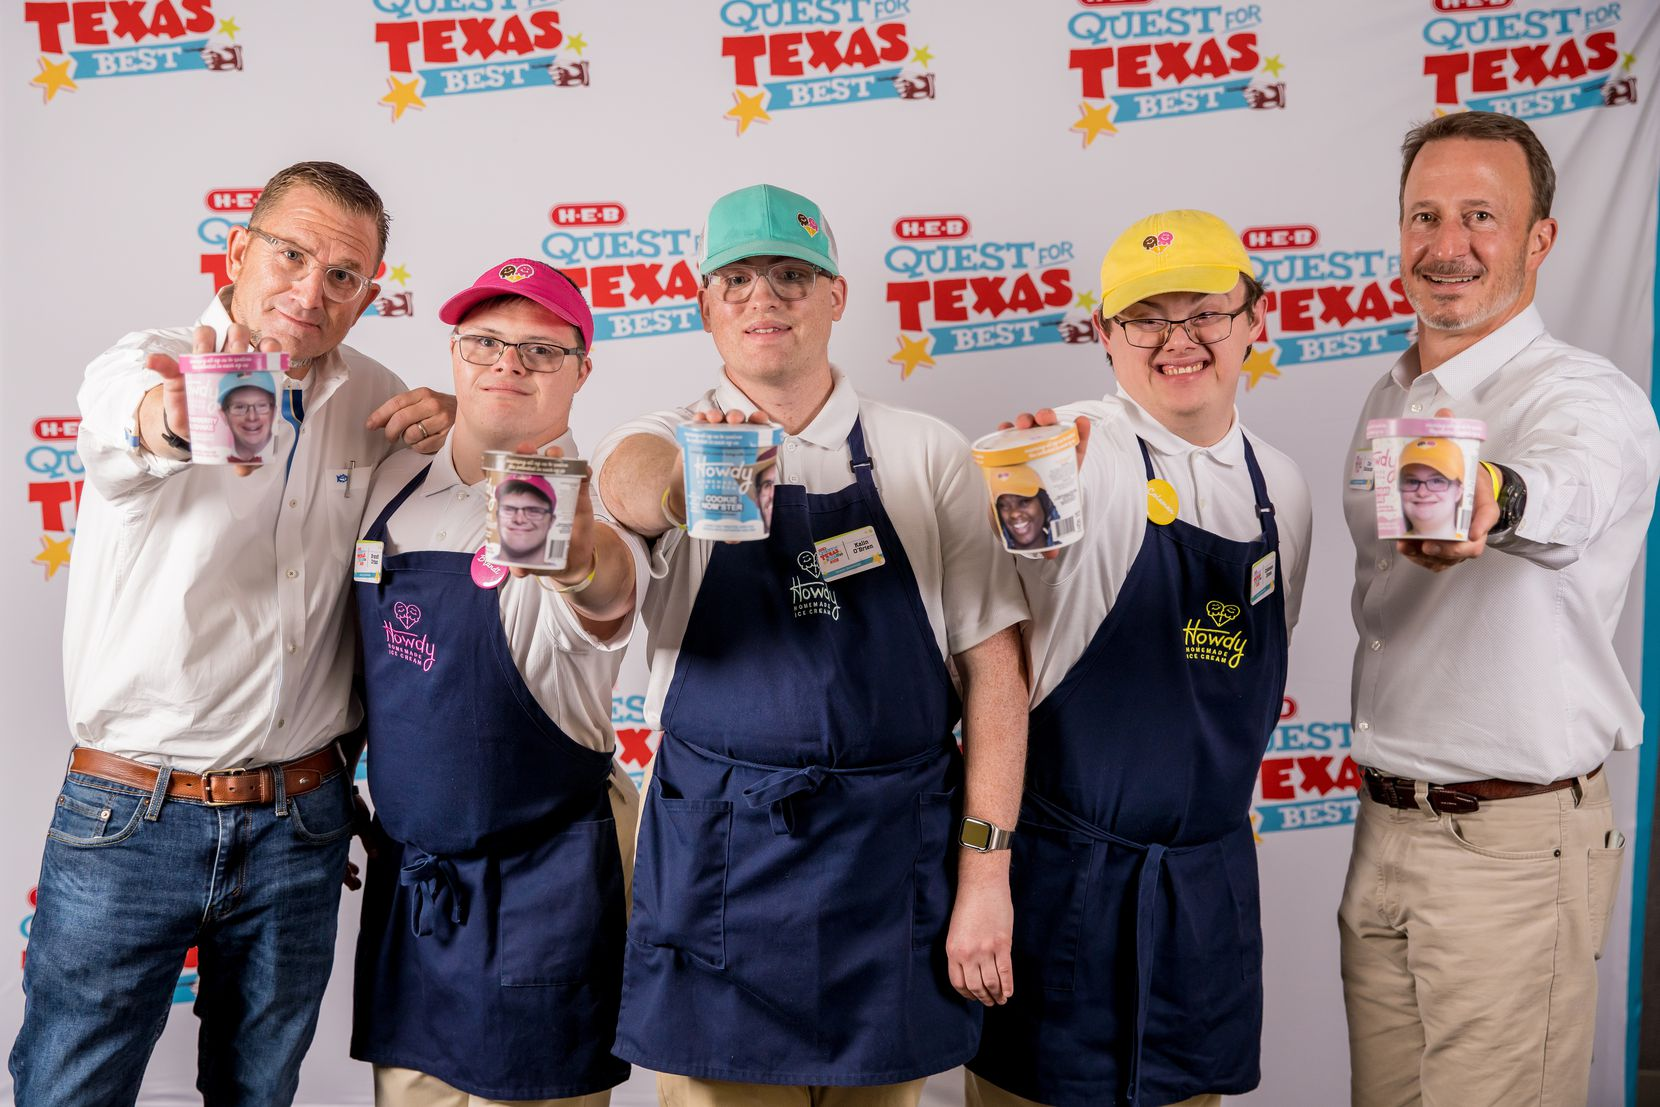 Dallas-based Howdy Homemade executives, left to right, Tom Landis, founder; Brandt Urban, vice president; Kalin O Brien, senior vice president; Coleman Jones, vice president; and Chris Dahlander, president and chief operating officer. The ice cream brand won third place in the 2021 H-E-B Quest for Texas Best competition.